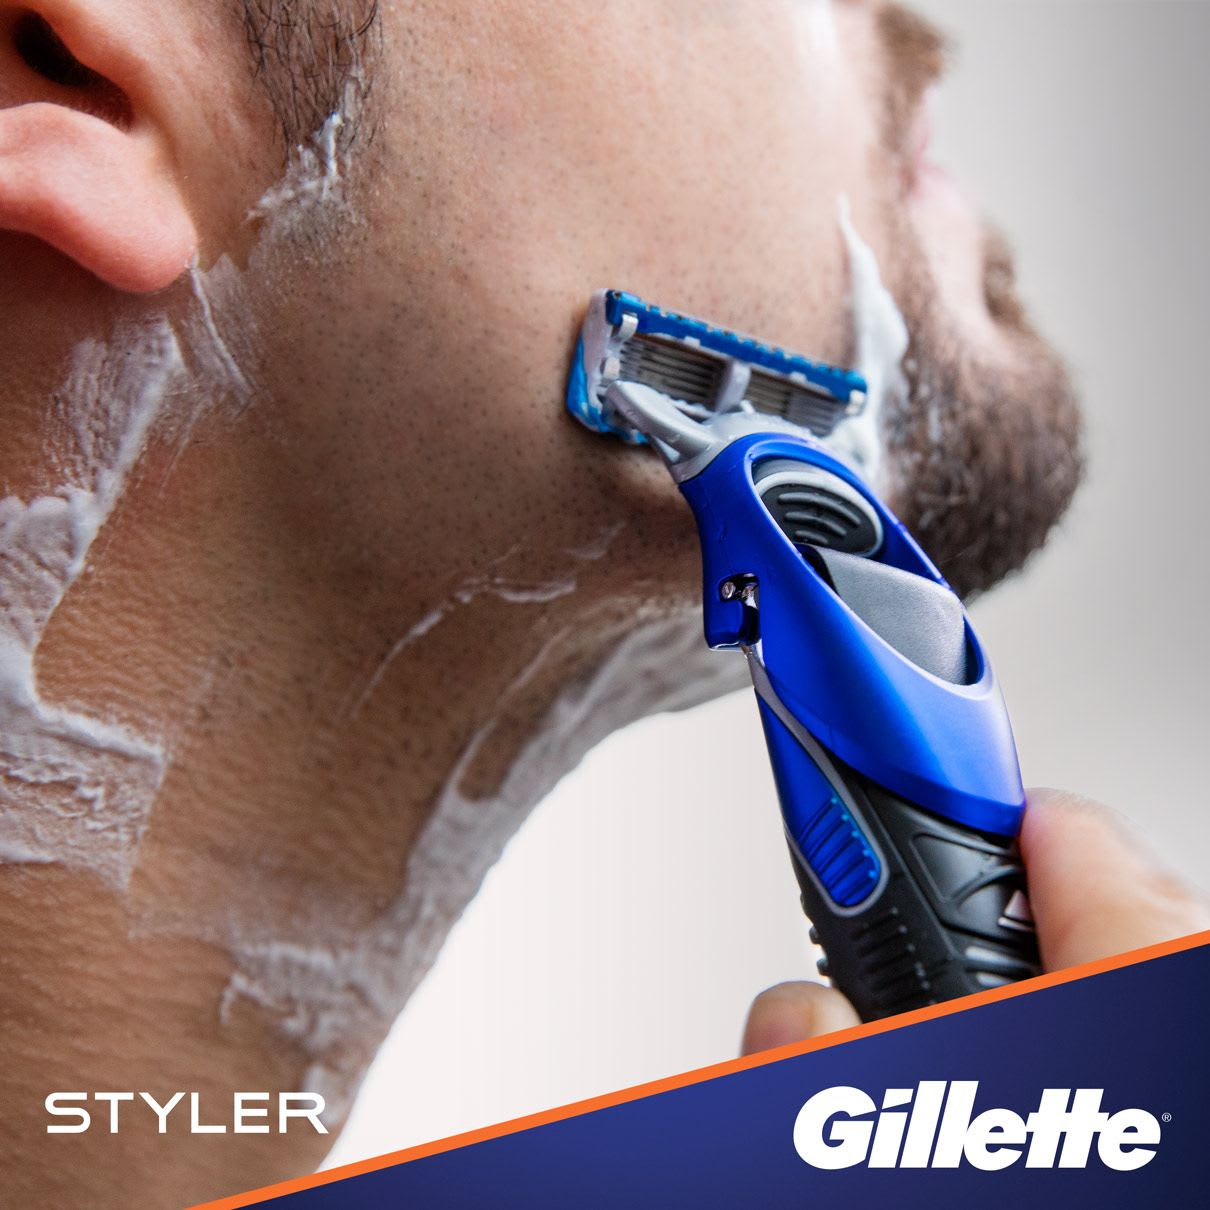 Proglide Styler Beard Trimmer Power Razor